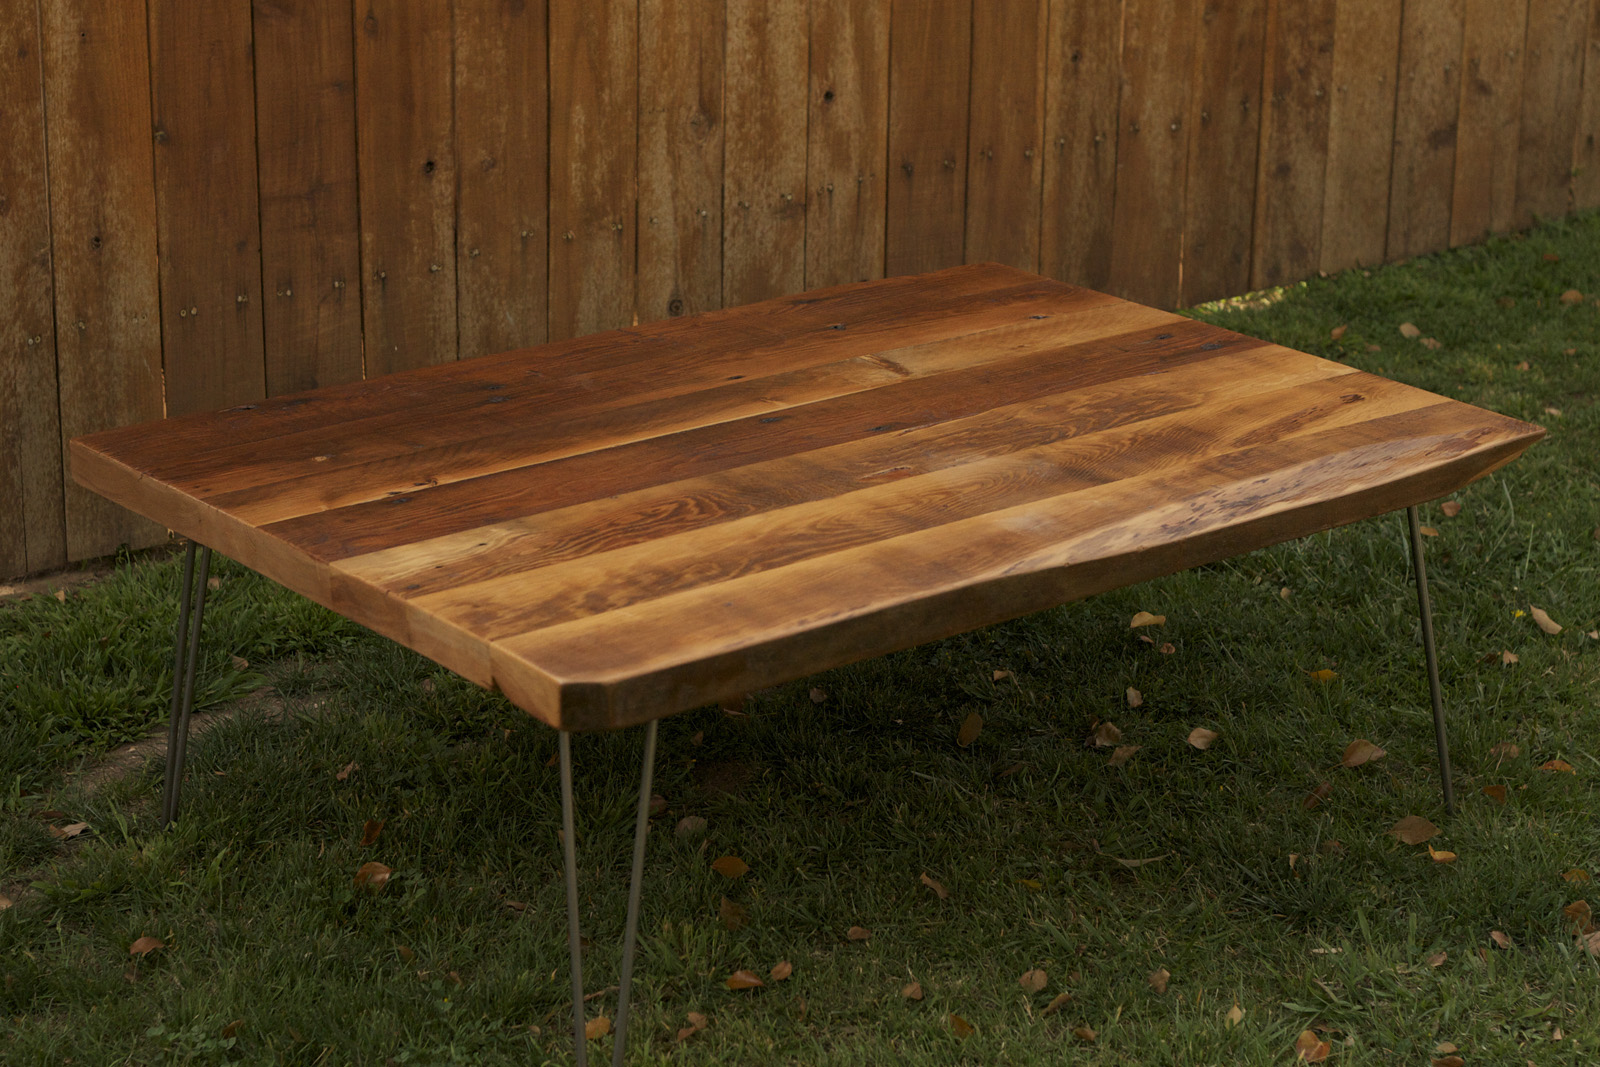 ... | Reclaimed Wood Furniture: Rustic Coffee Table with Hairpin Legs